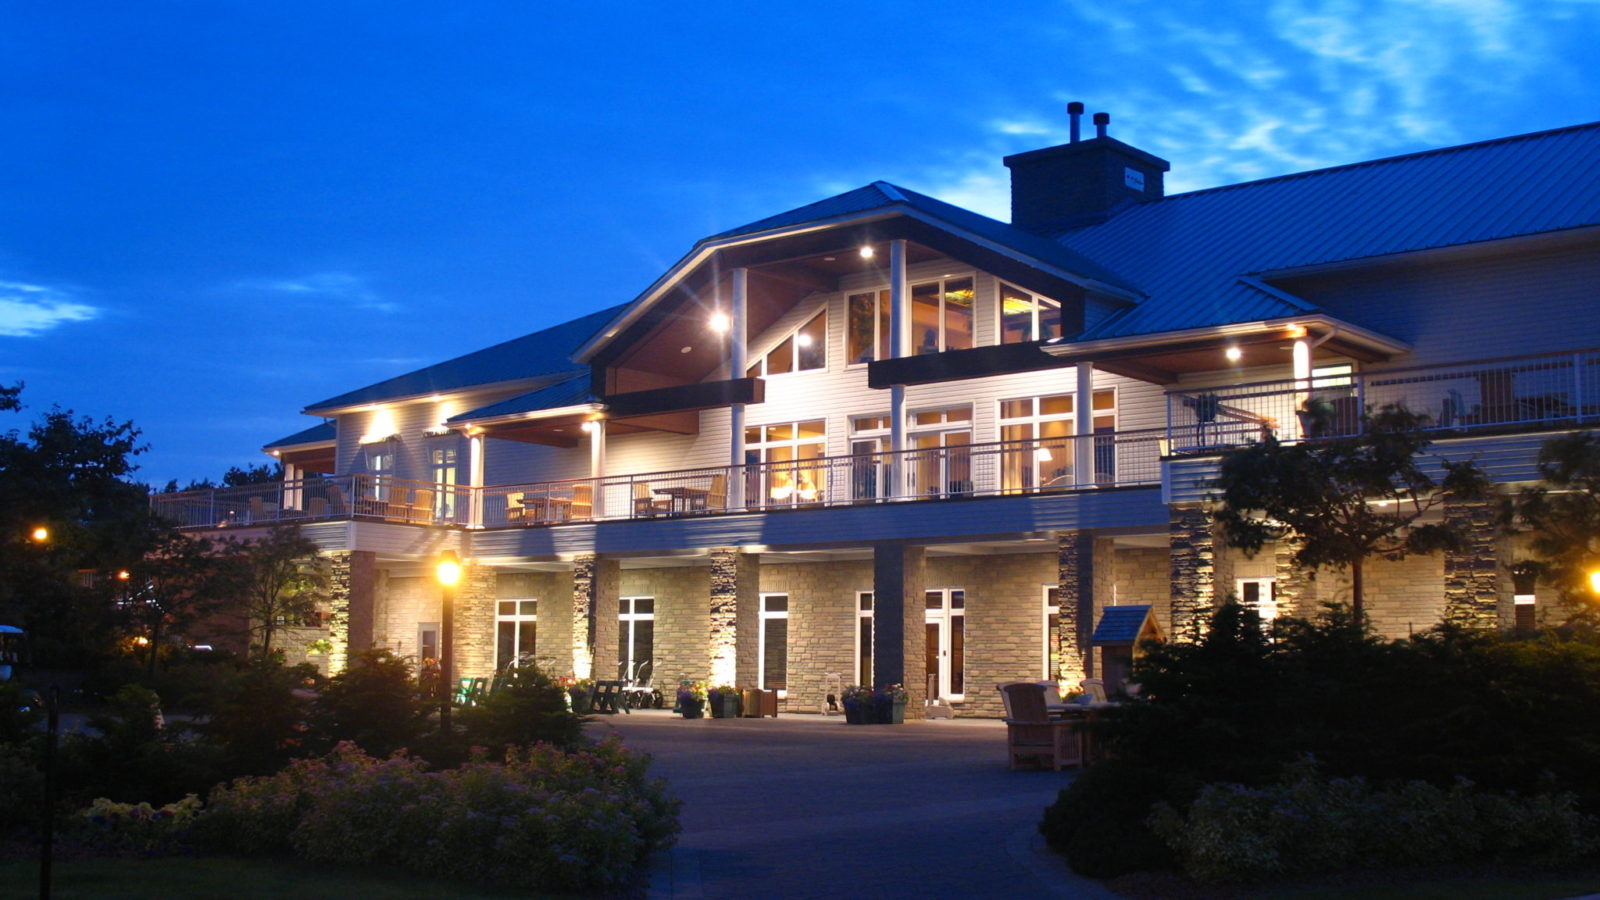 fox-harbr-resort-clubhouse-exterior-night_27275506919_o